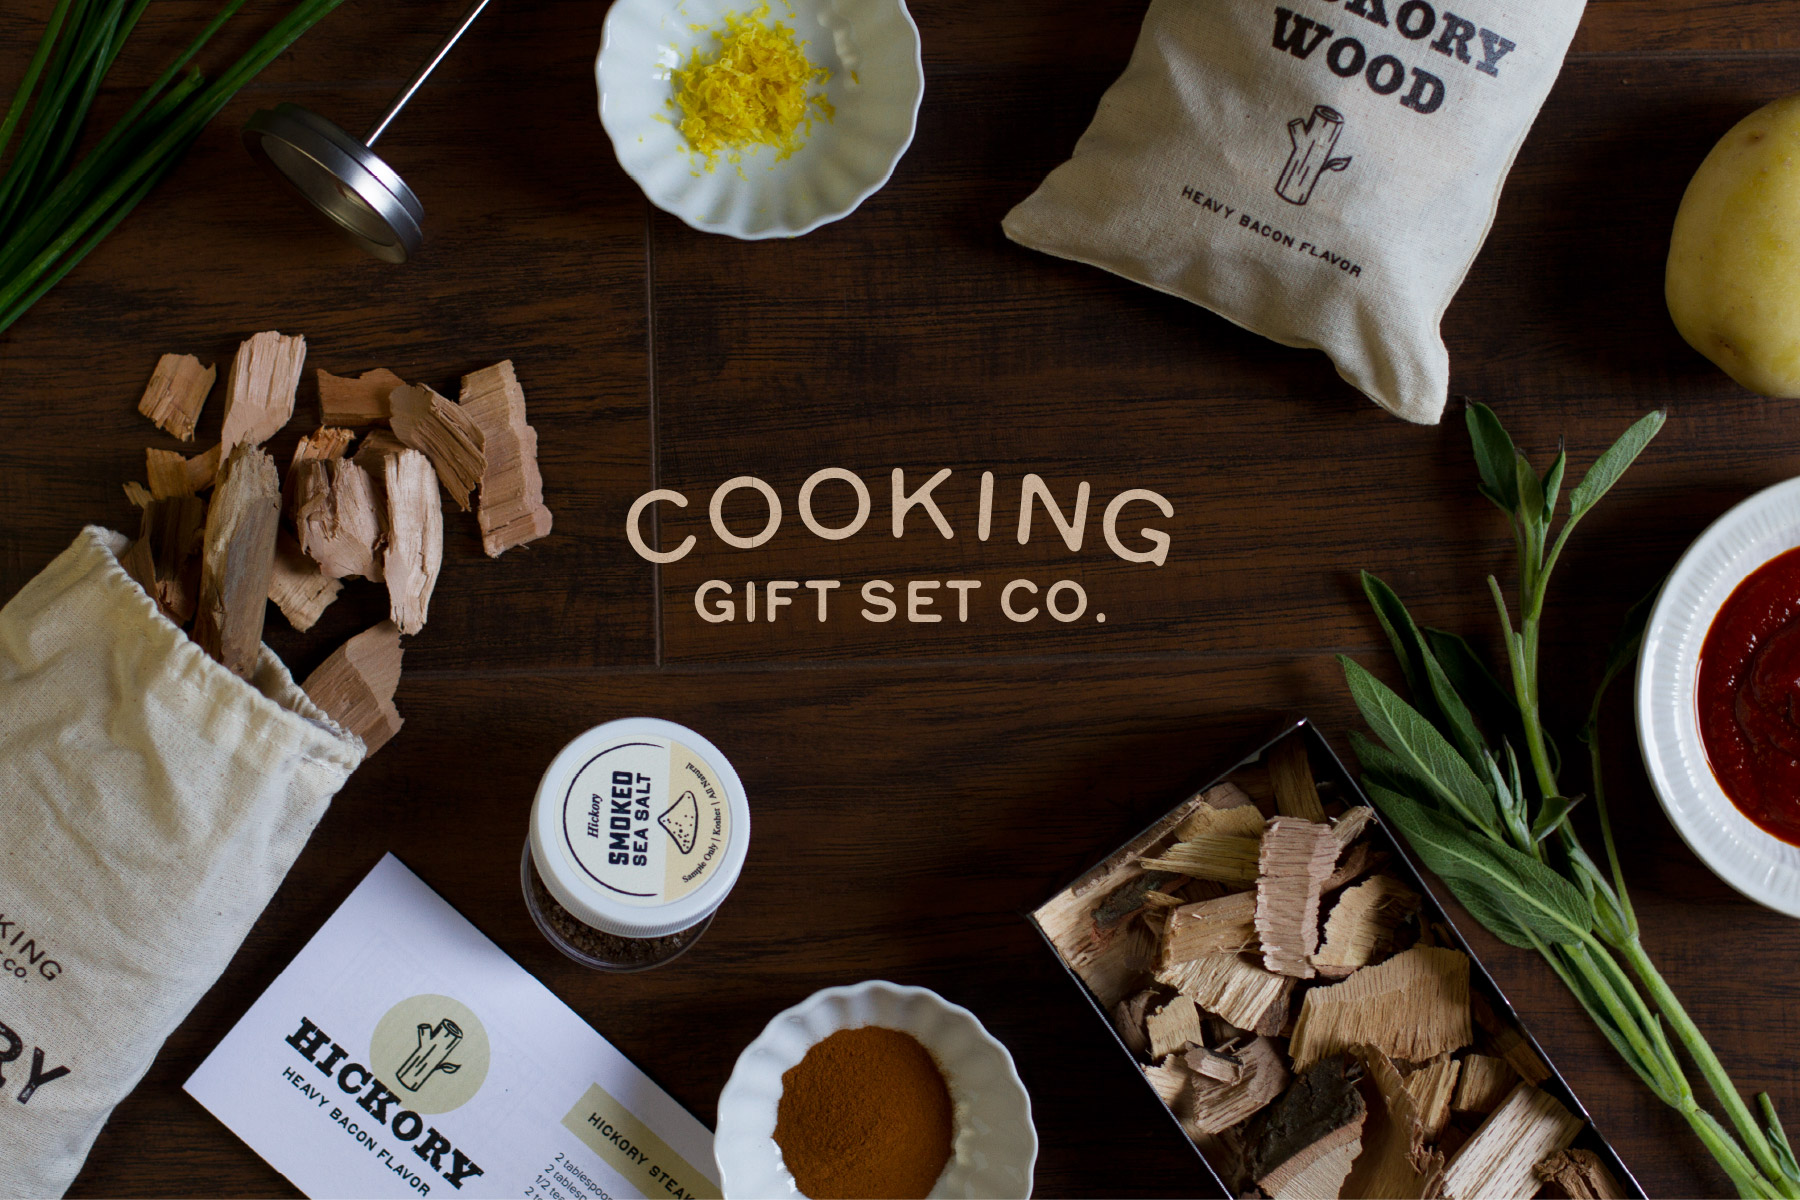 Cooking with wood chips table set up